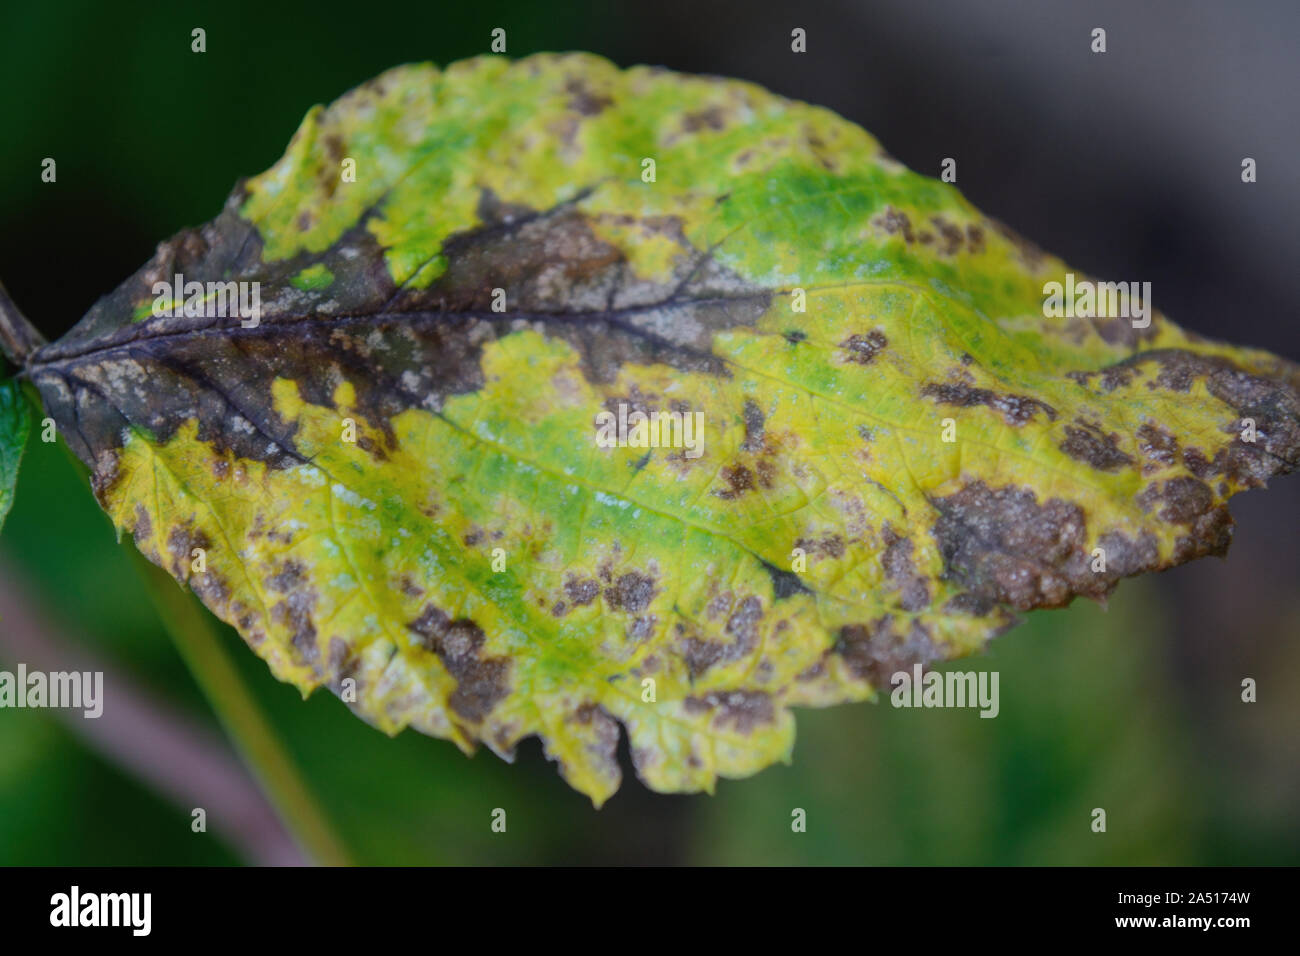 Bacterial blight on bean leaf, Pseudomonas syringae Stock Photo